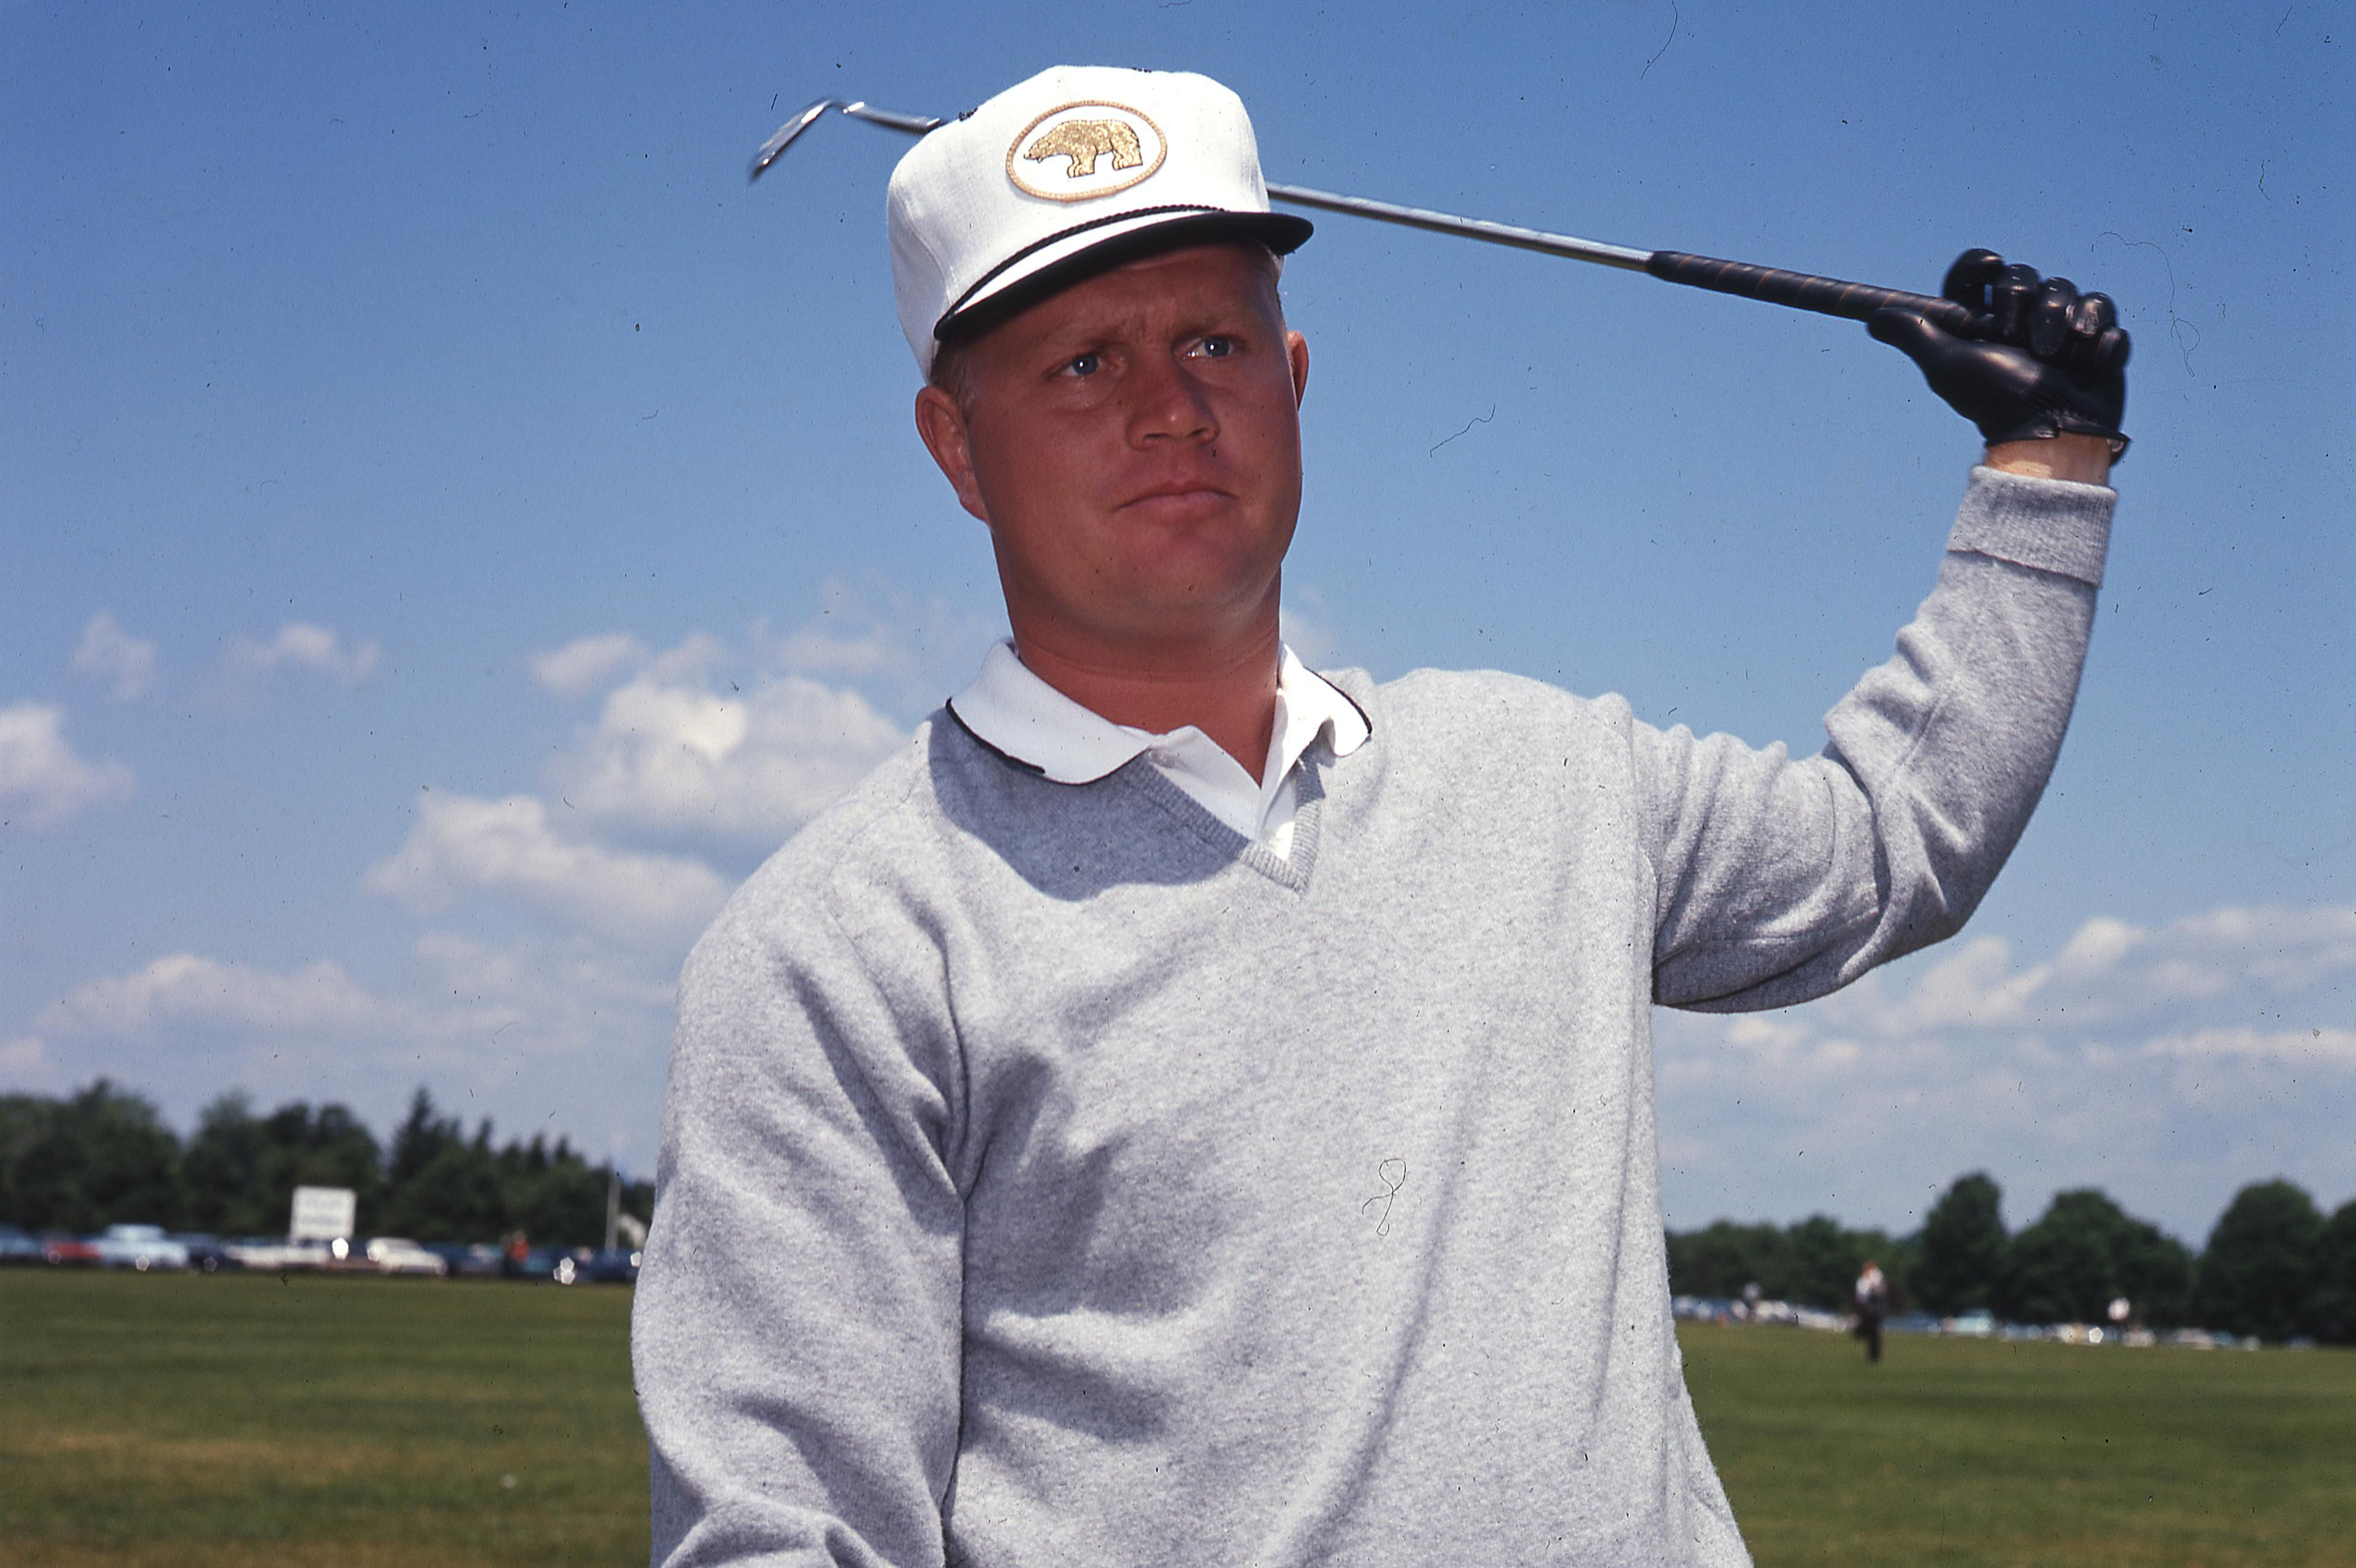 Jack Nicklaus' nickname is The Golden Bear